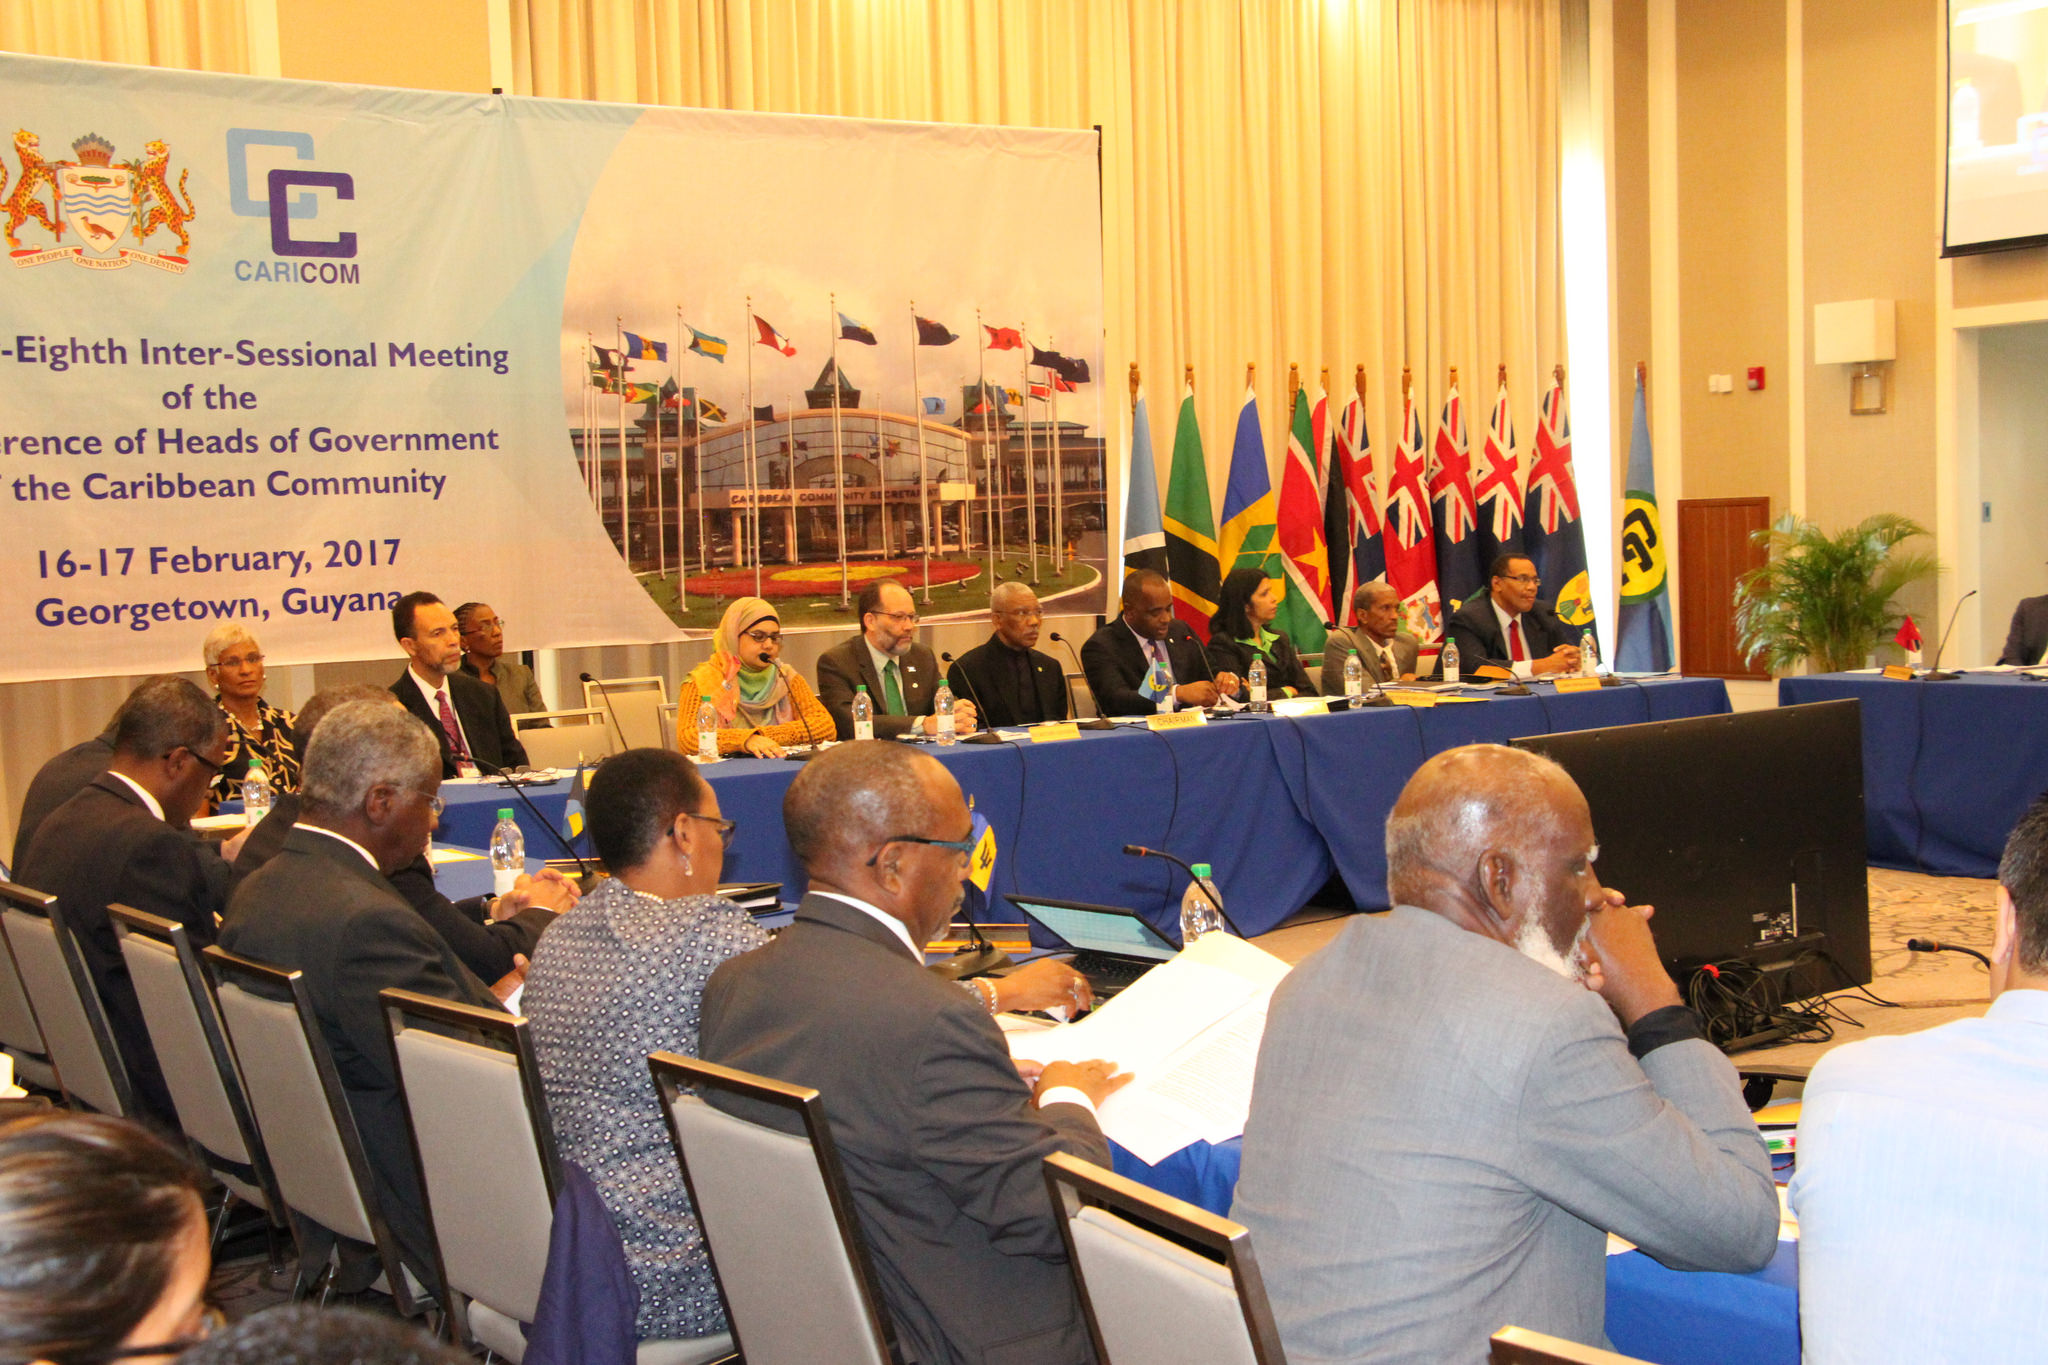 Twenty-Eighth Intersessional Meeting of the Conference of Heads of Government of CARICOM, 16 February, 2017